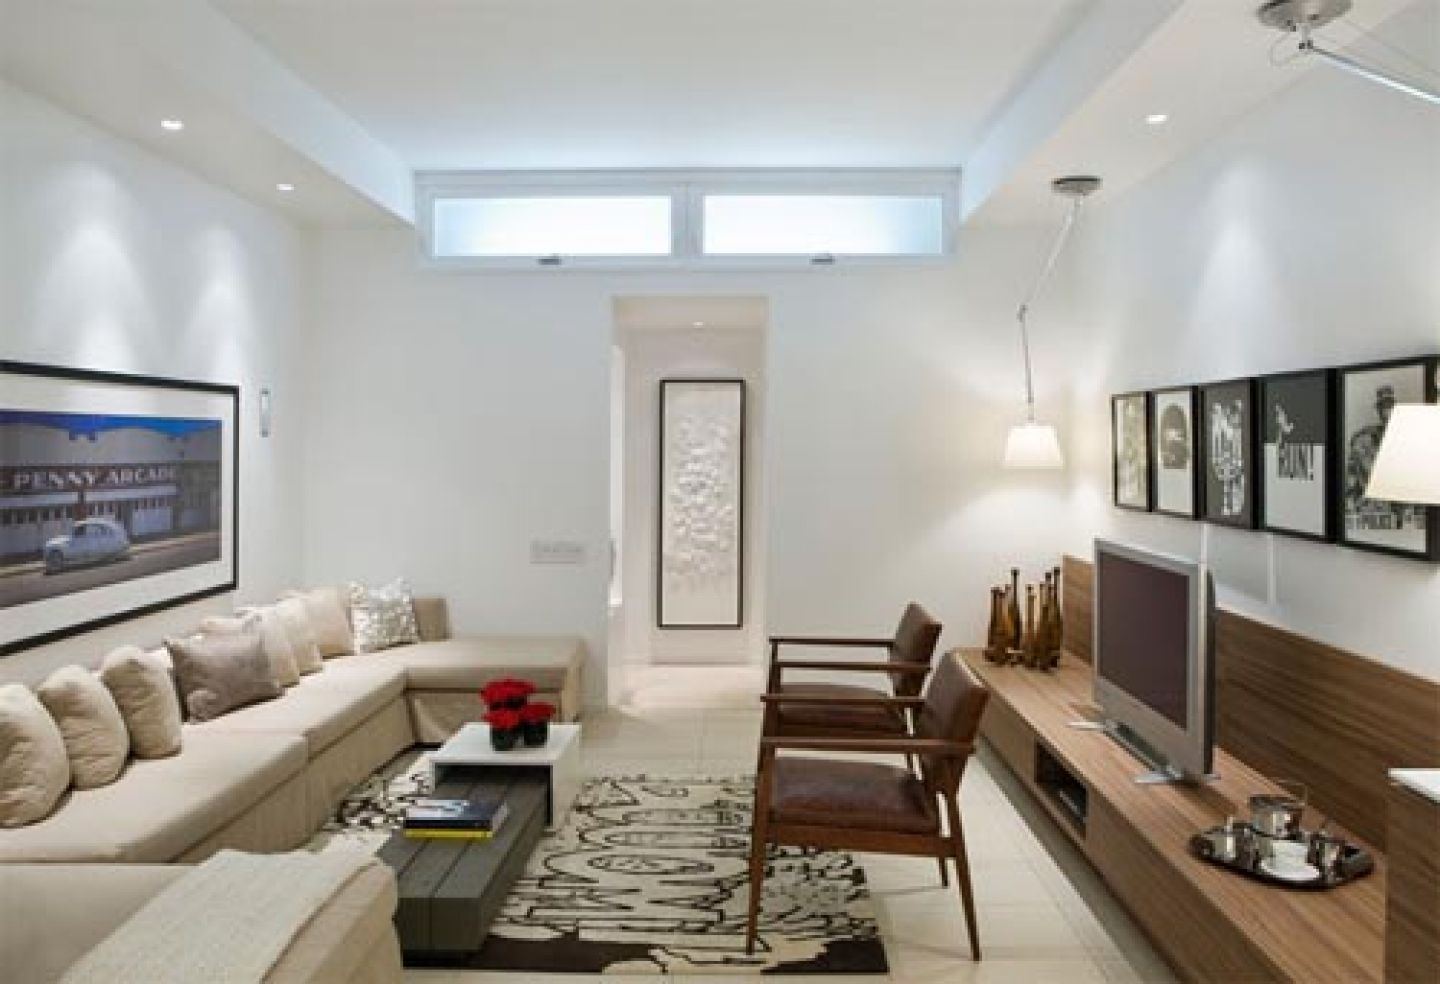 Minimalist Open Living Room Design With Beige Sofa And White Wall ...